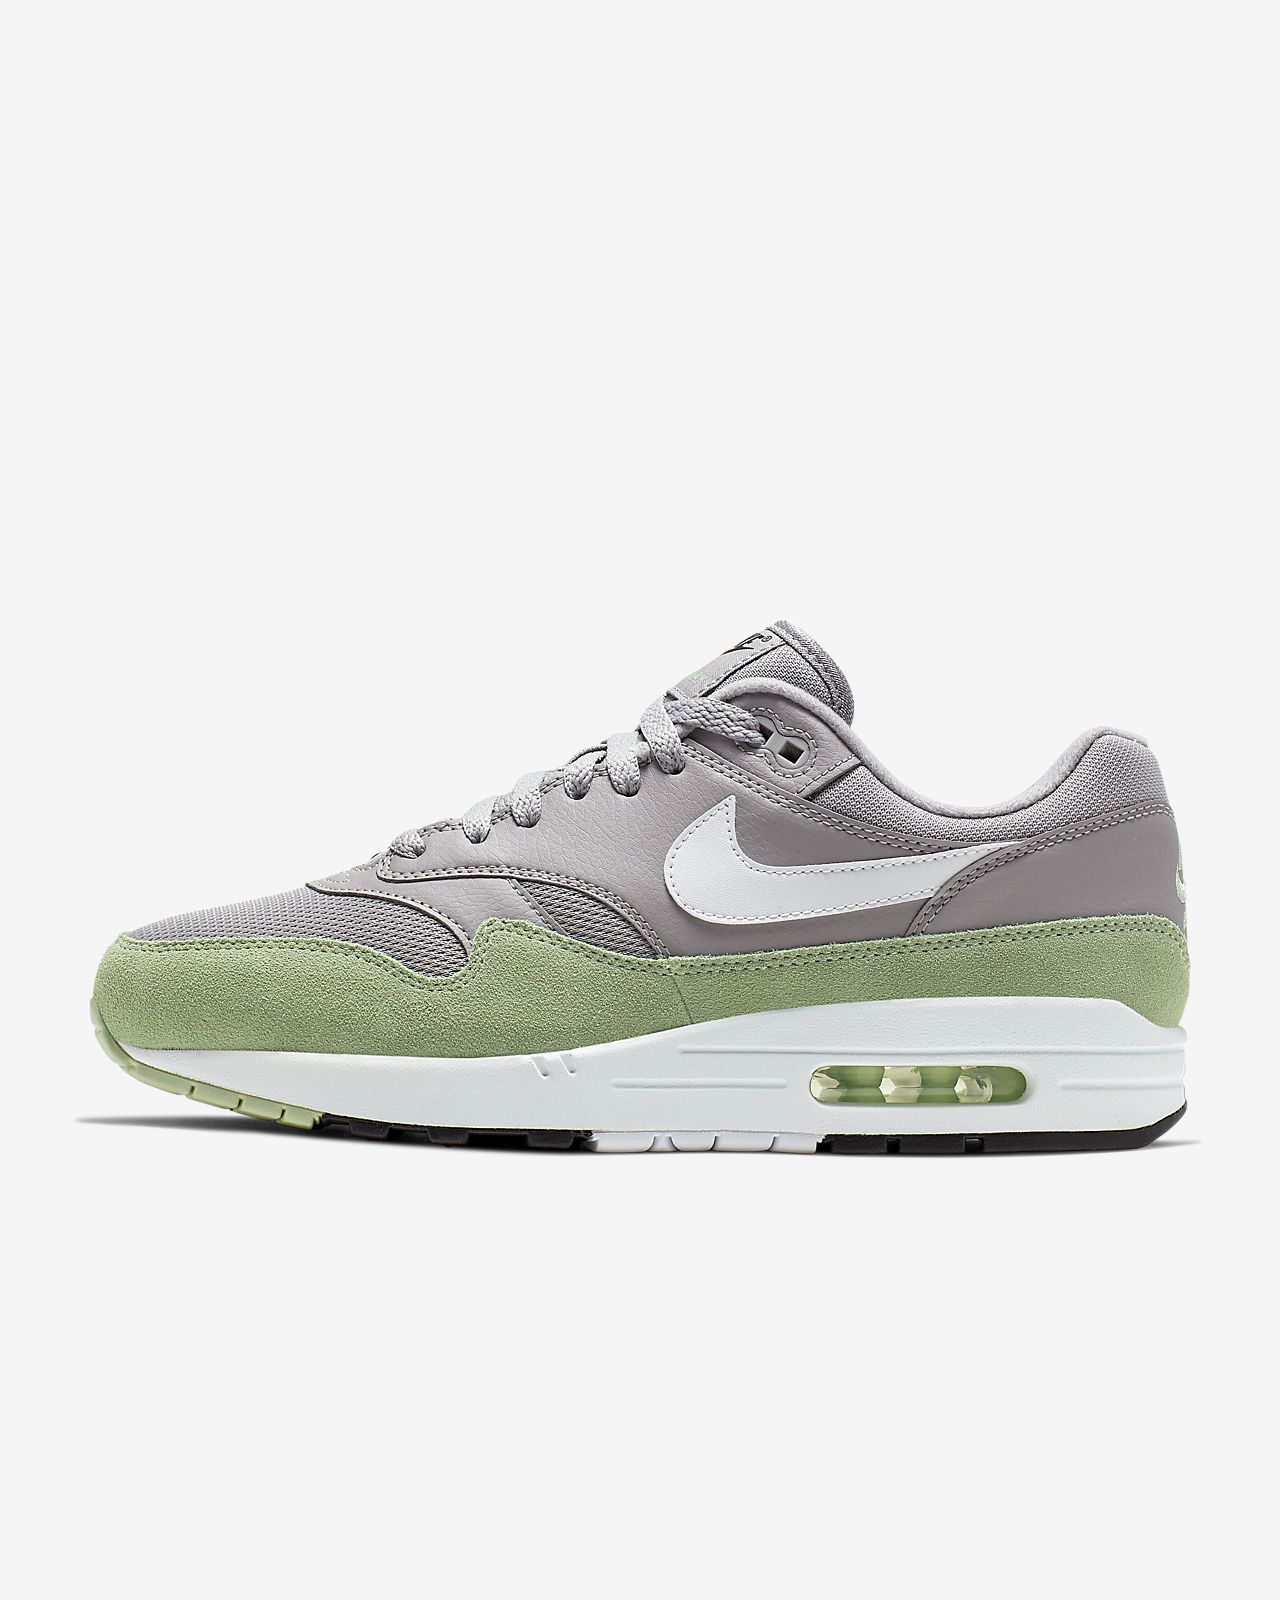 photos officielles e7c23 82fa1 Nike Air Max 1 Men's Shoe